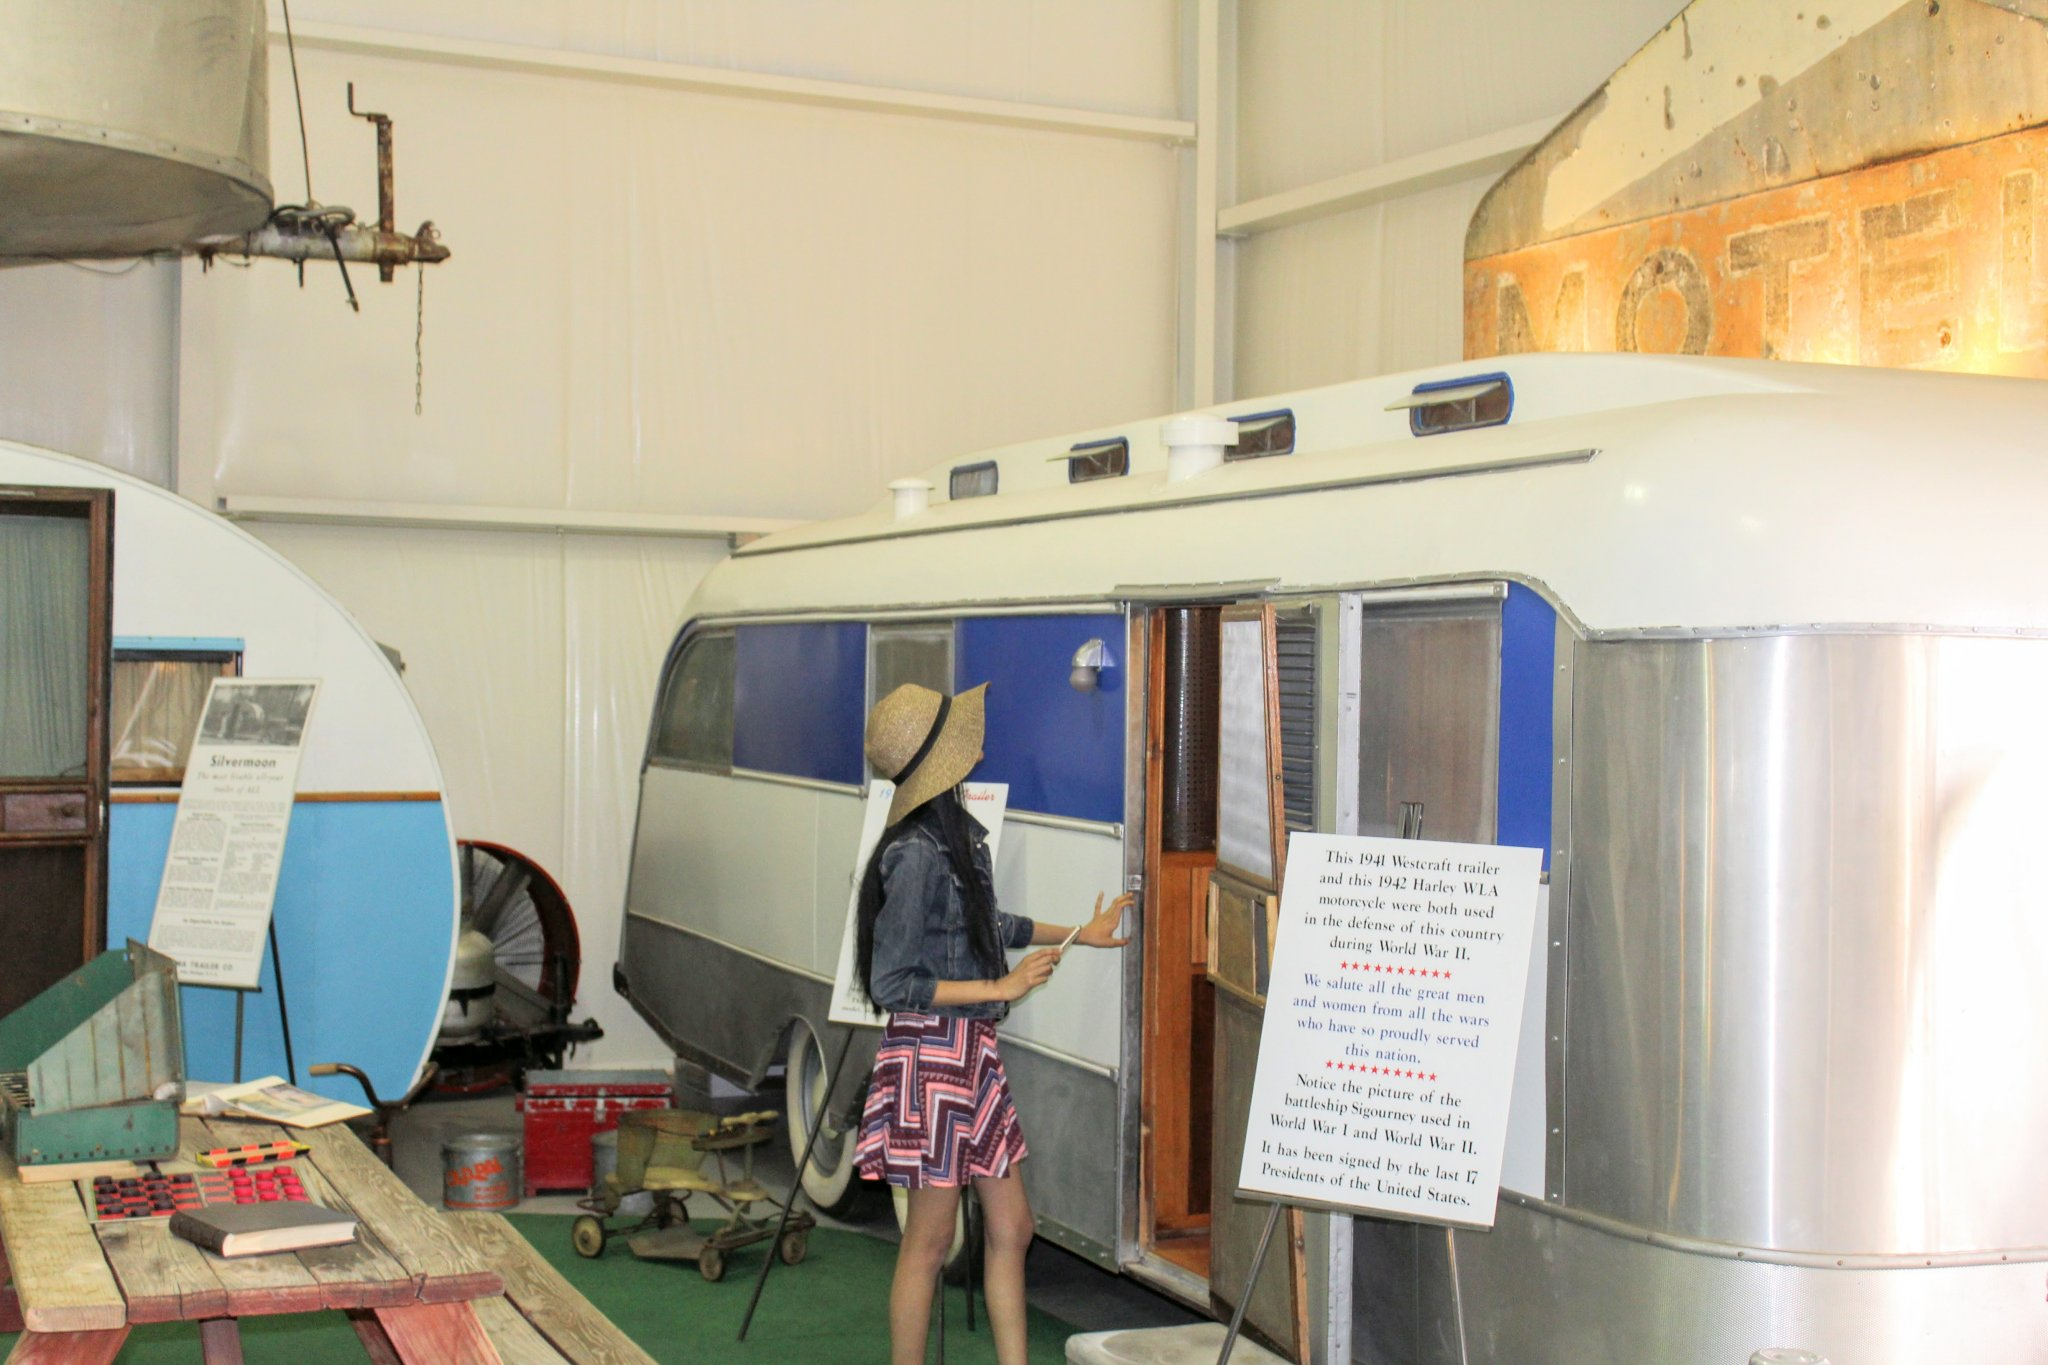 Offbeat Things to Do in Amarillo: Exploring the RV Museum